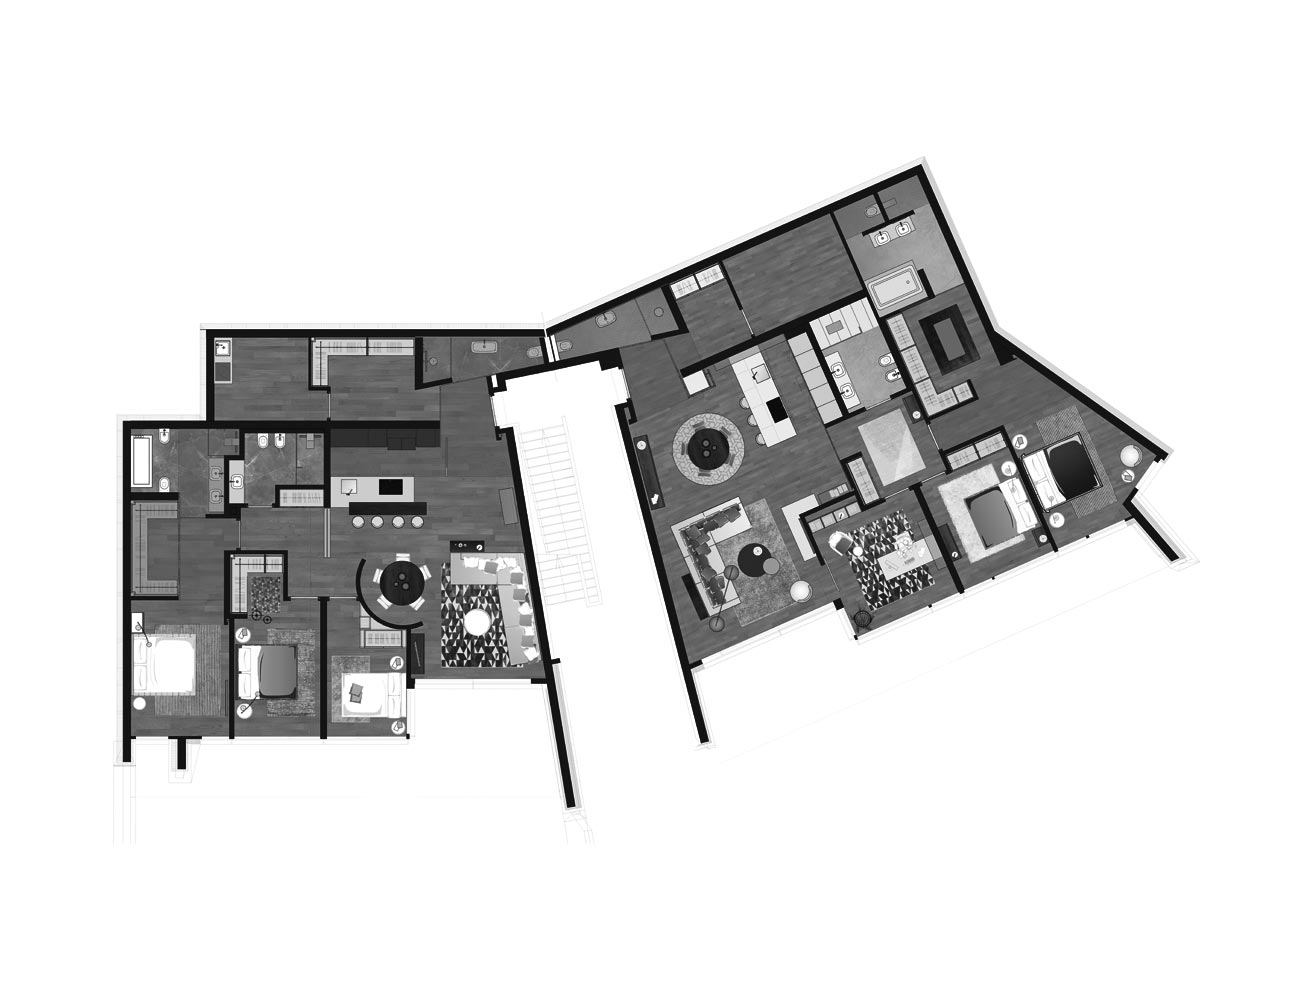 Muzzano Lugano apartments first floor plan